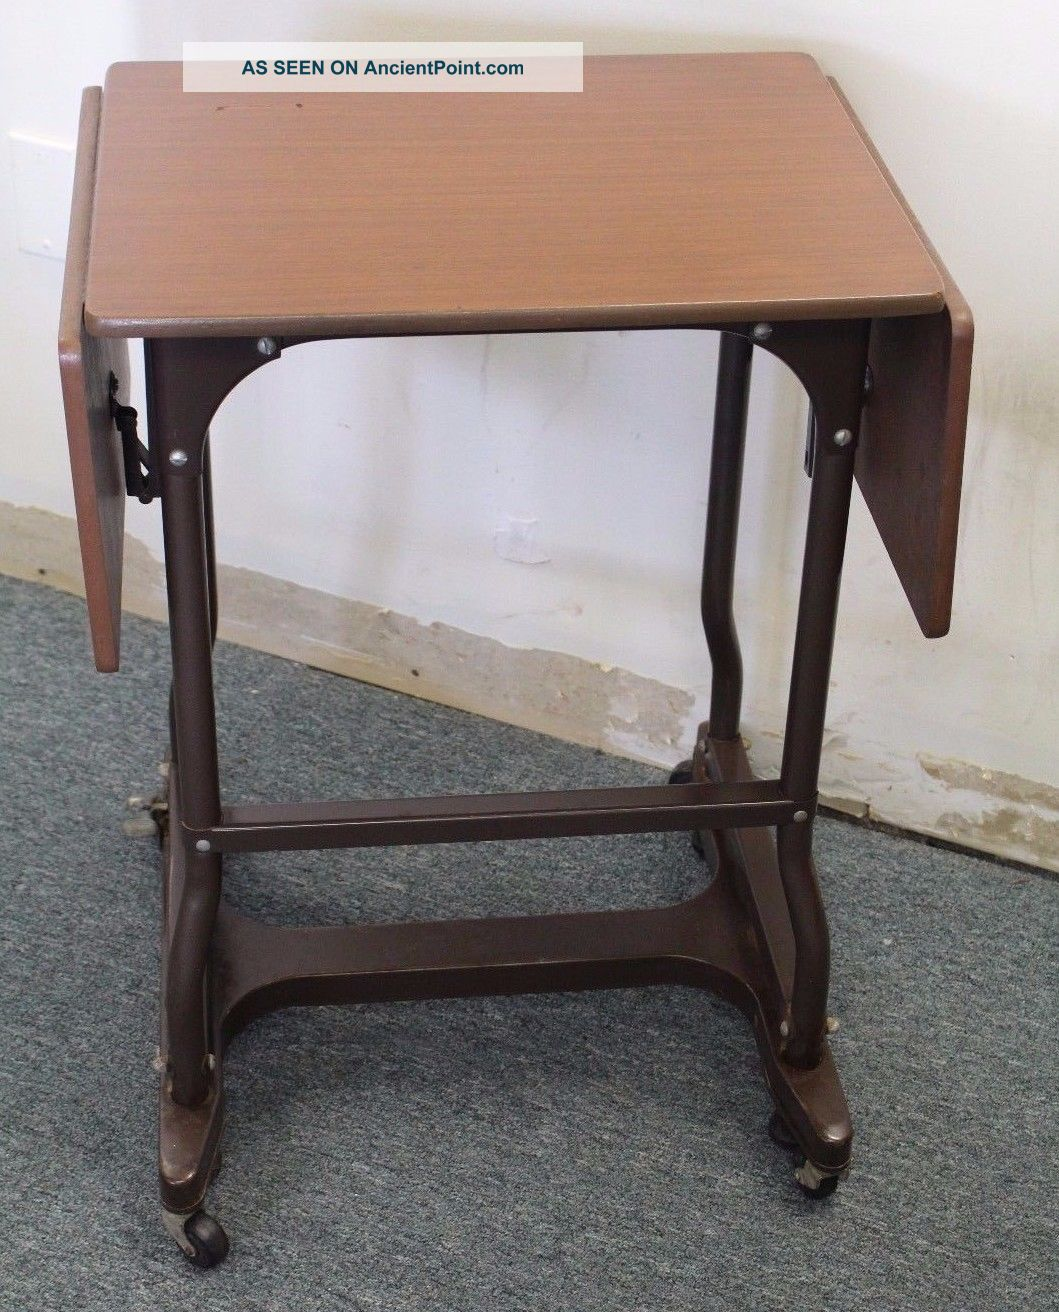 Marvelous photograph of  Industrial Metal & Wood Typewriter Cart Table Desk W/ Locking Wheels with #845C48 color and 1059x1312 pixels